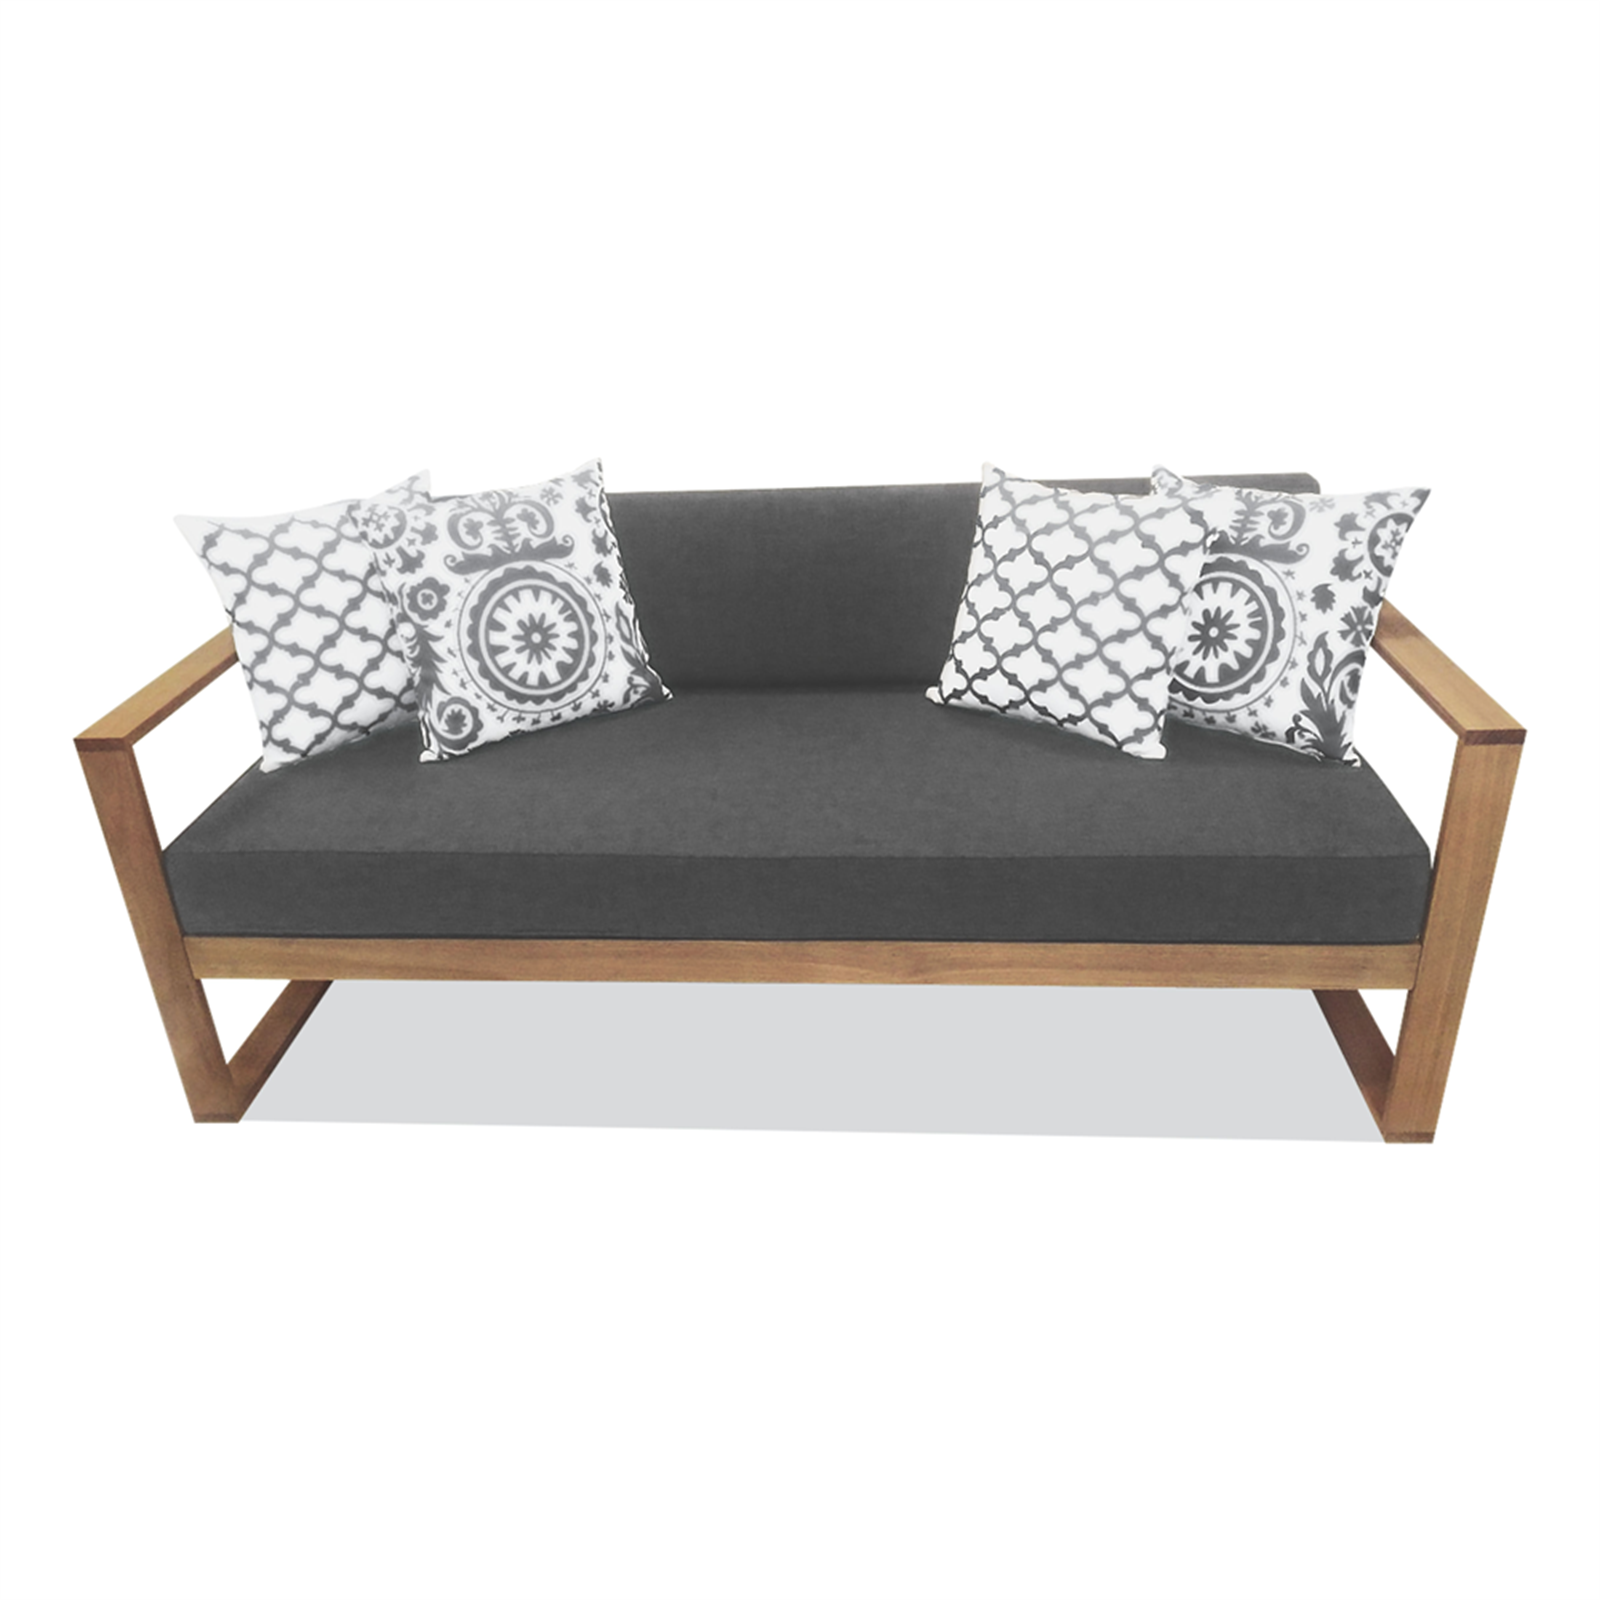 Find Mimosa Timber Avani Daybed at Bunnings Warehouse Visit your